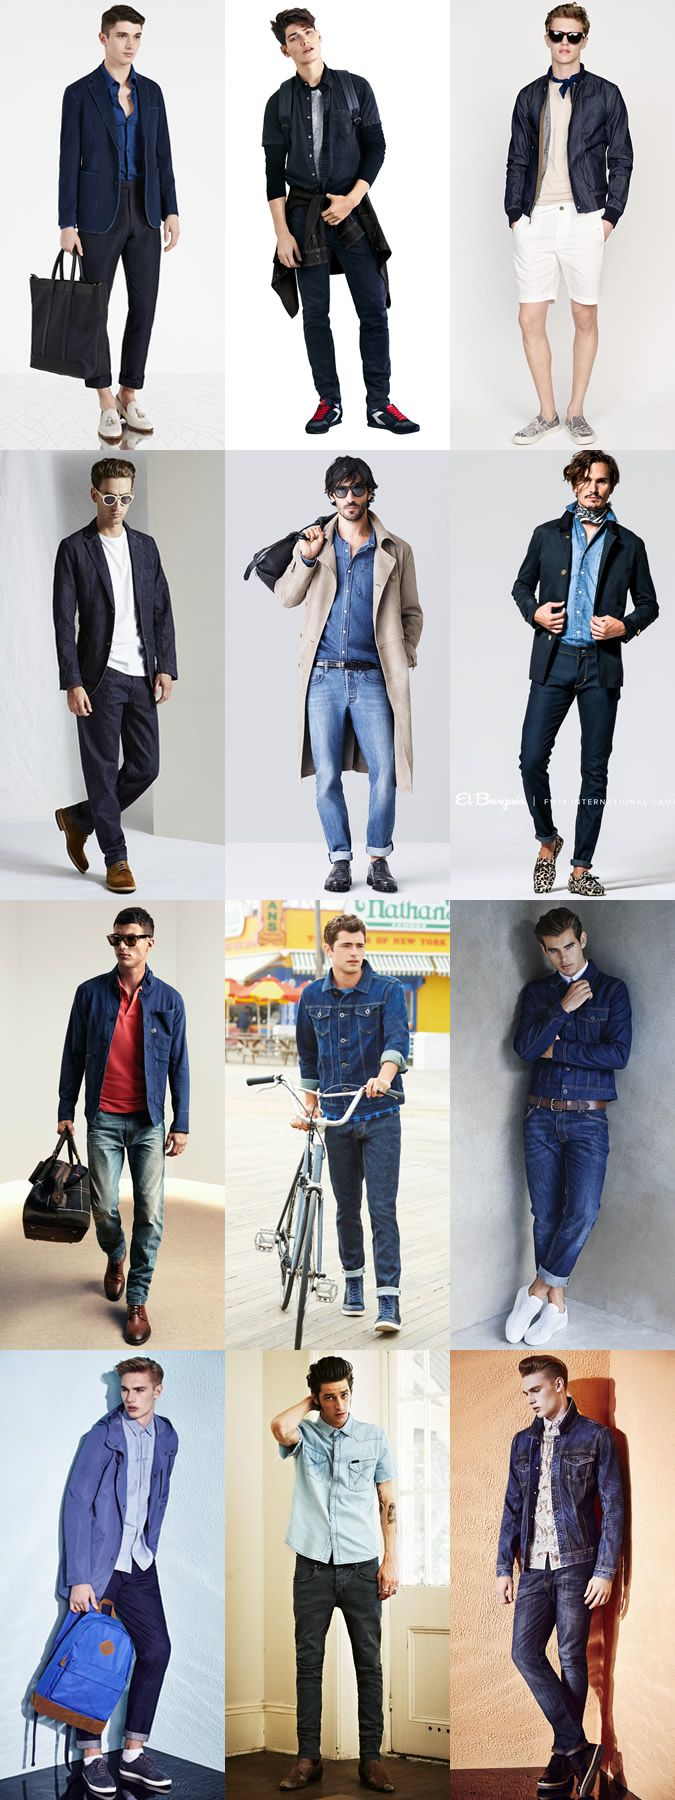 5 Trends To Master For 2015 Spring/Summer : 2) Double (Denim) Duty Lookbook Inspiration